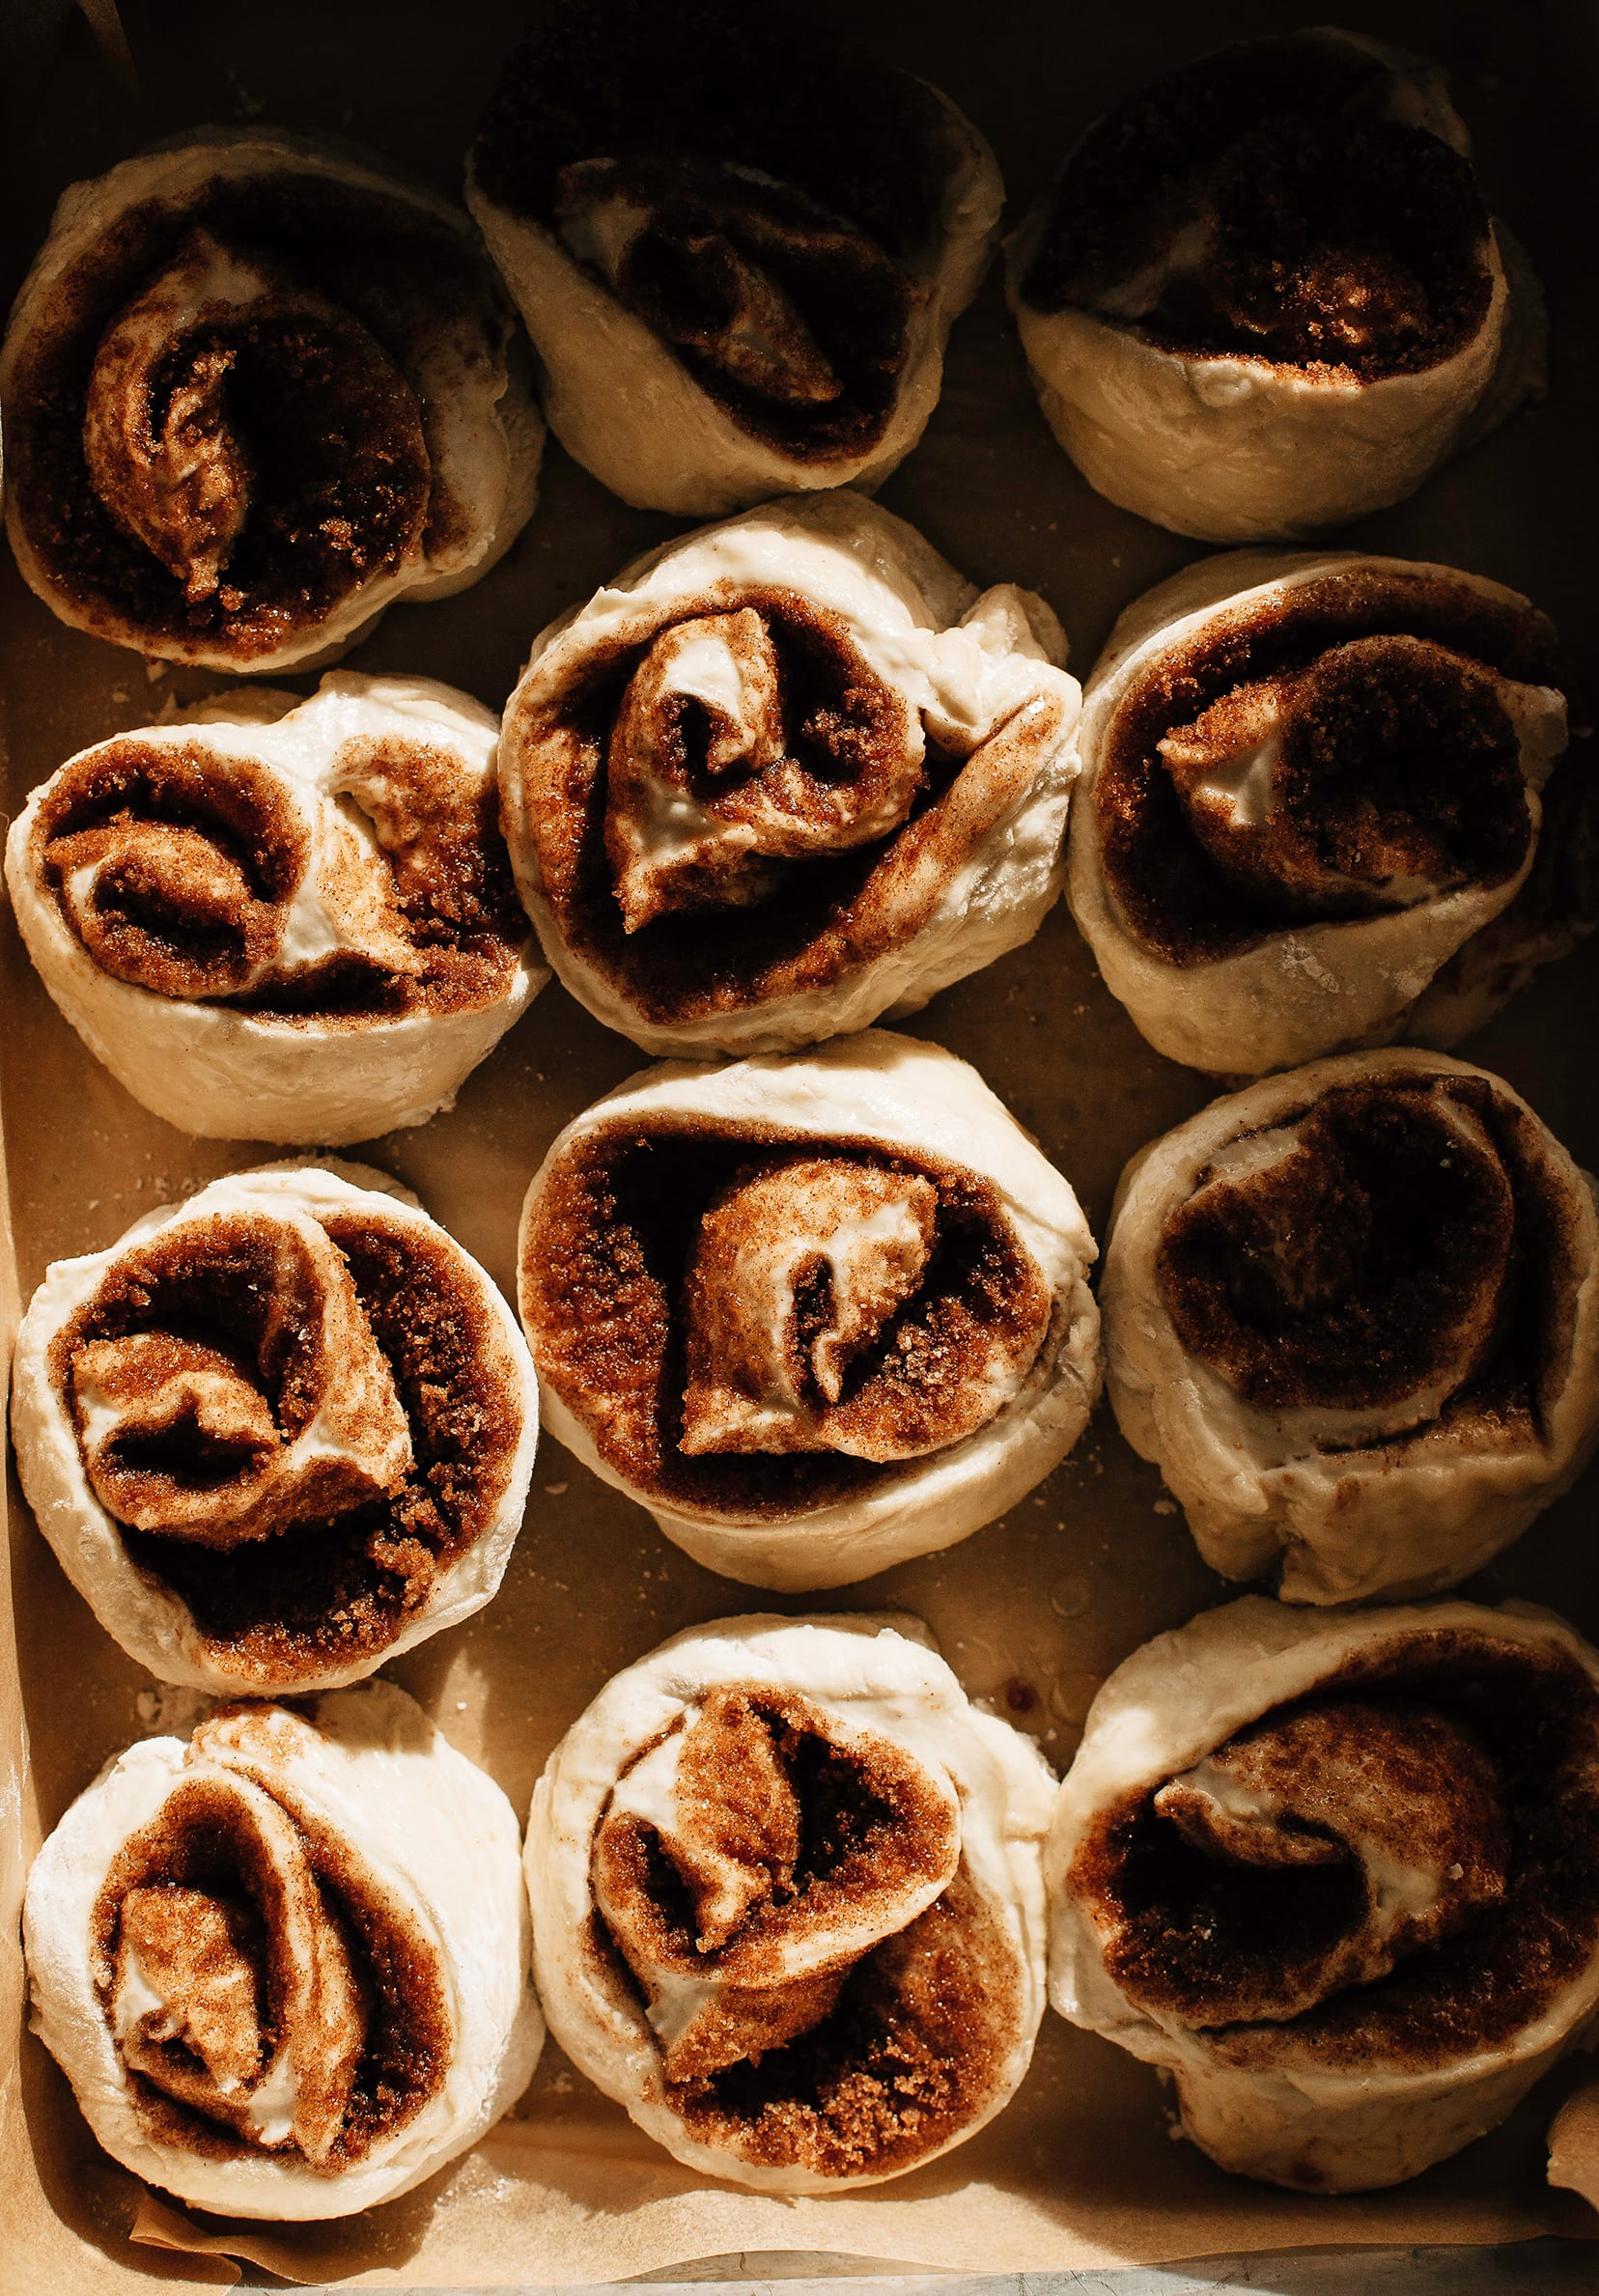 Image shows a pan of cinnamon rolls before baking in direct harsh light.